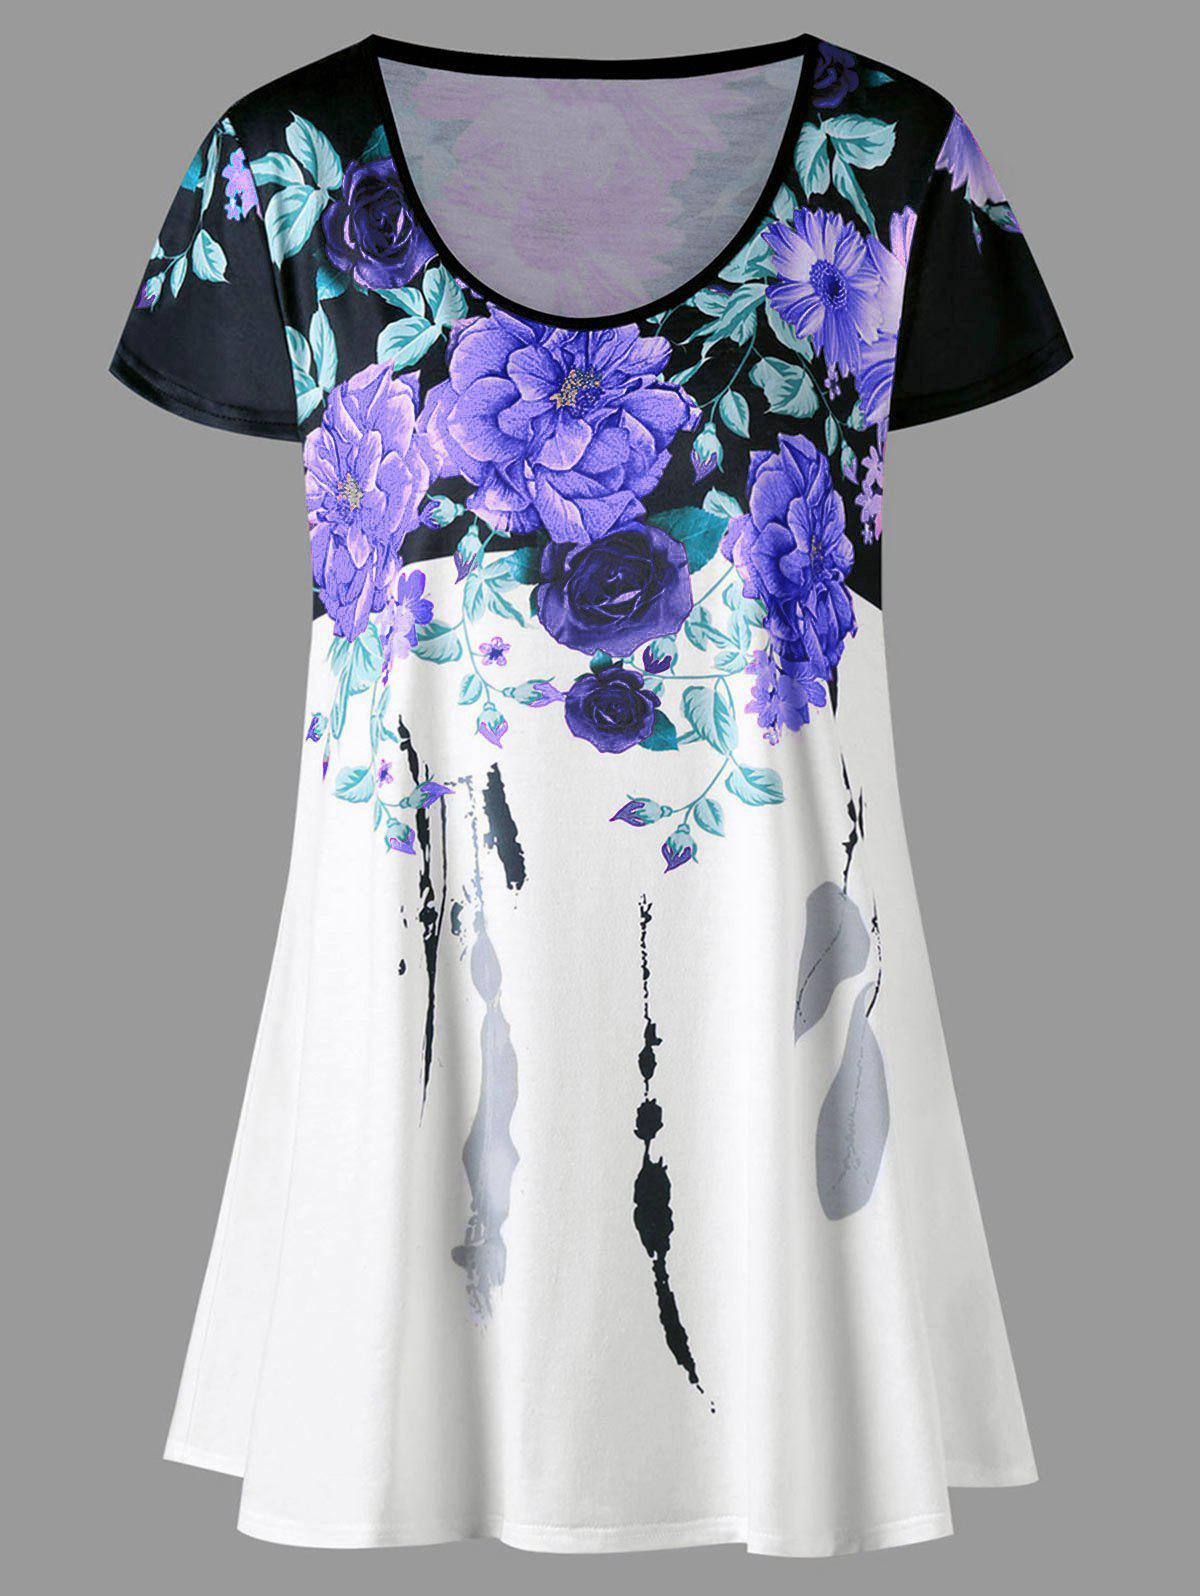 Plus Size Floral Longline TopWOMEN<br><br>Size: 4XL; Color: PURPLE; Material: Polyester,Spandex; Shirt Length: Long; Sleeve Length: Short; Collar: Scoop Neck; Style: Casual; Season: Summer; Pattern Type: Floral; Weight: 0.2300kg; Package Contents: 1 x T-shirt;